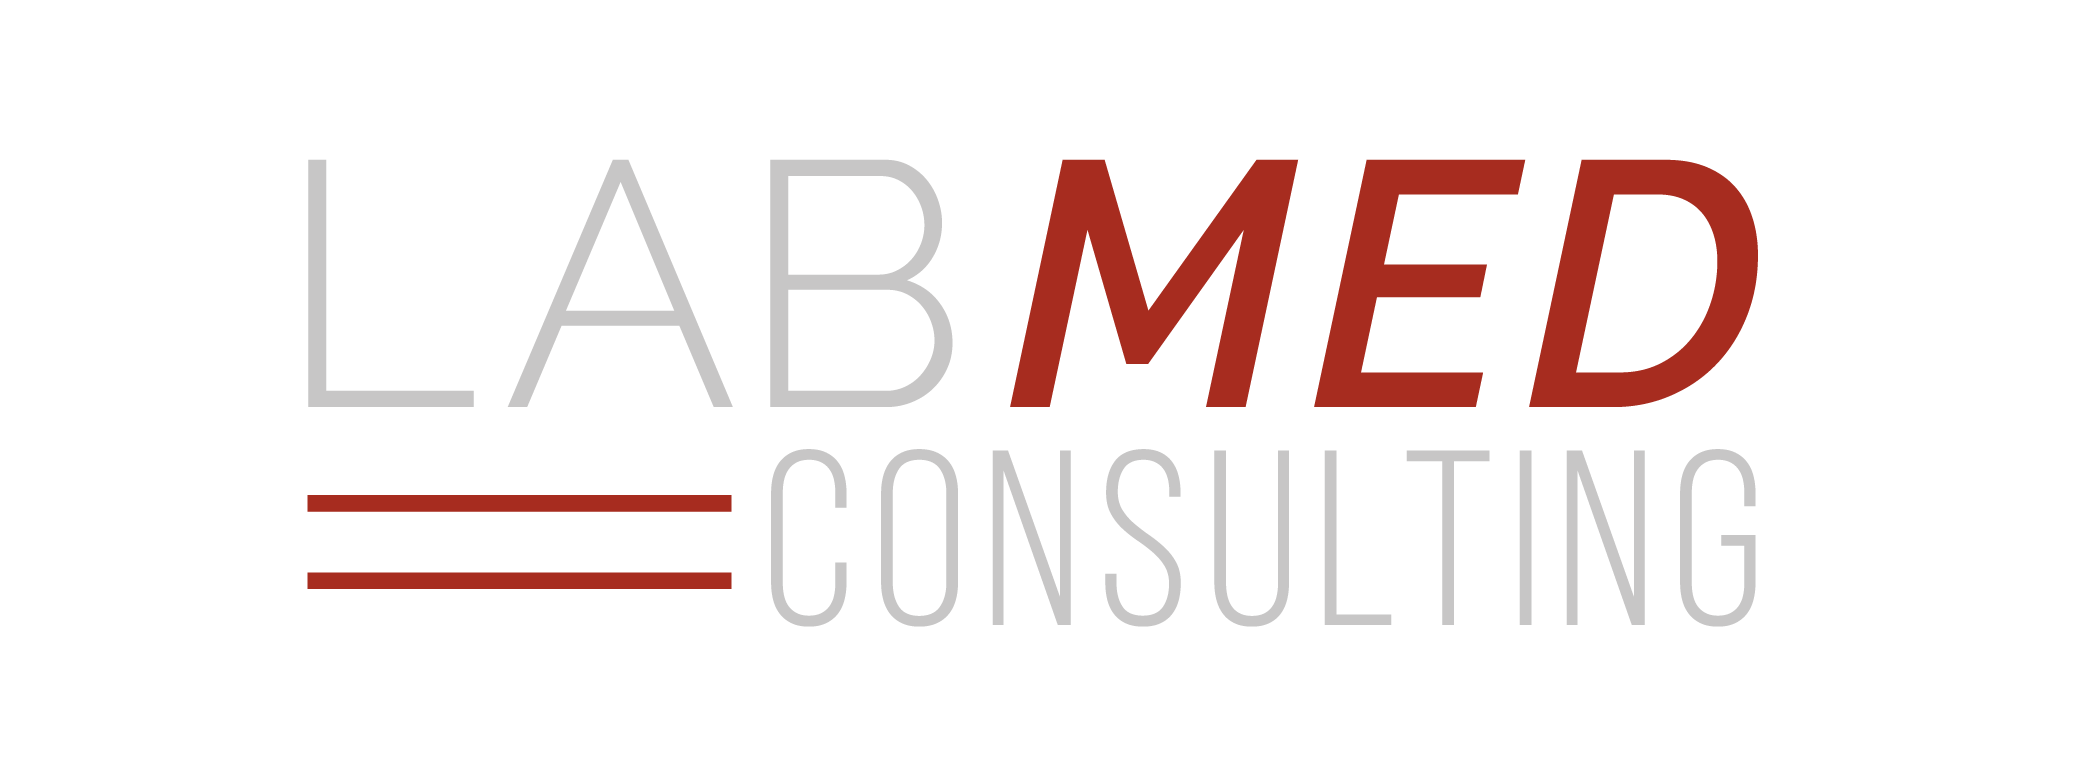 LabMed Consulting